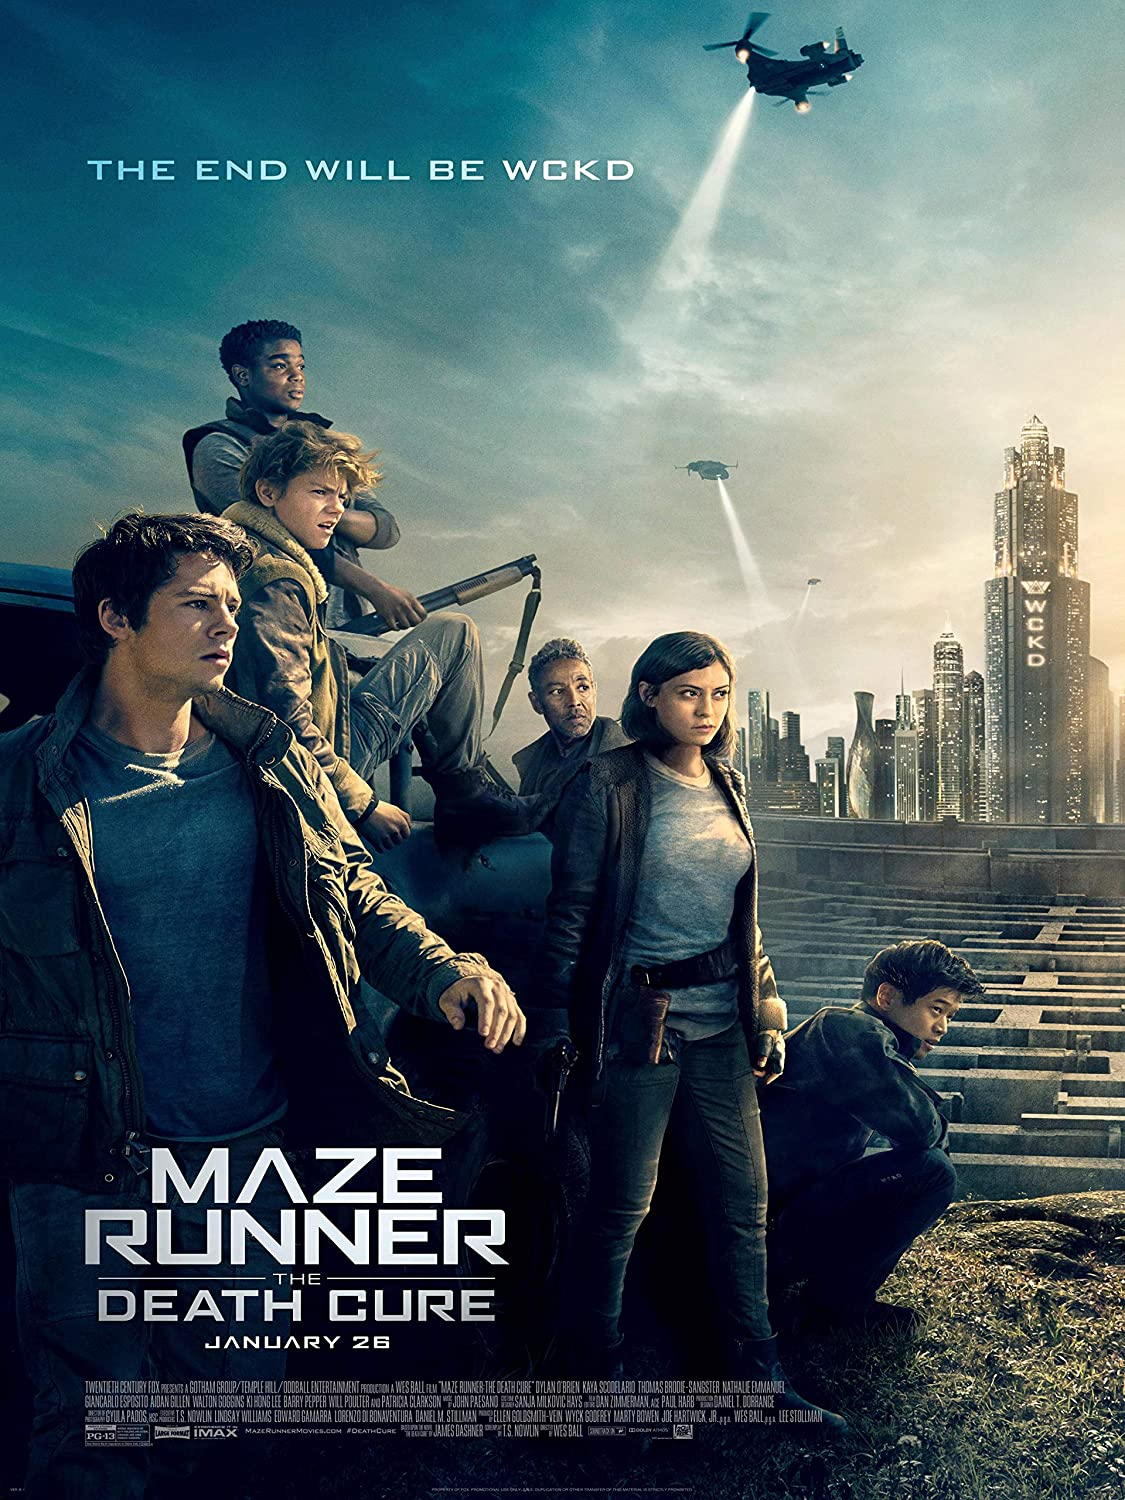 Maze Runner The Death Cure Movie Poster Standard Size 18×24 inches